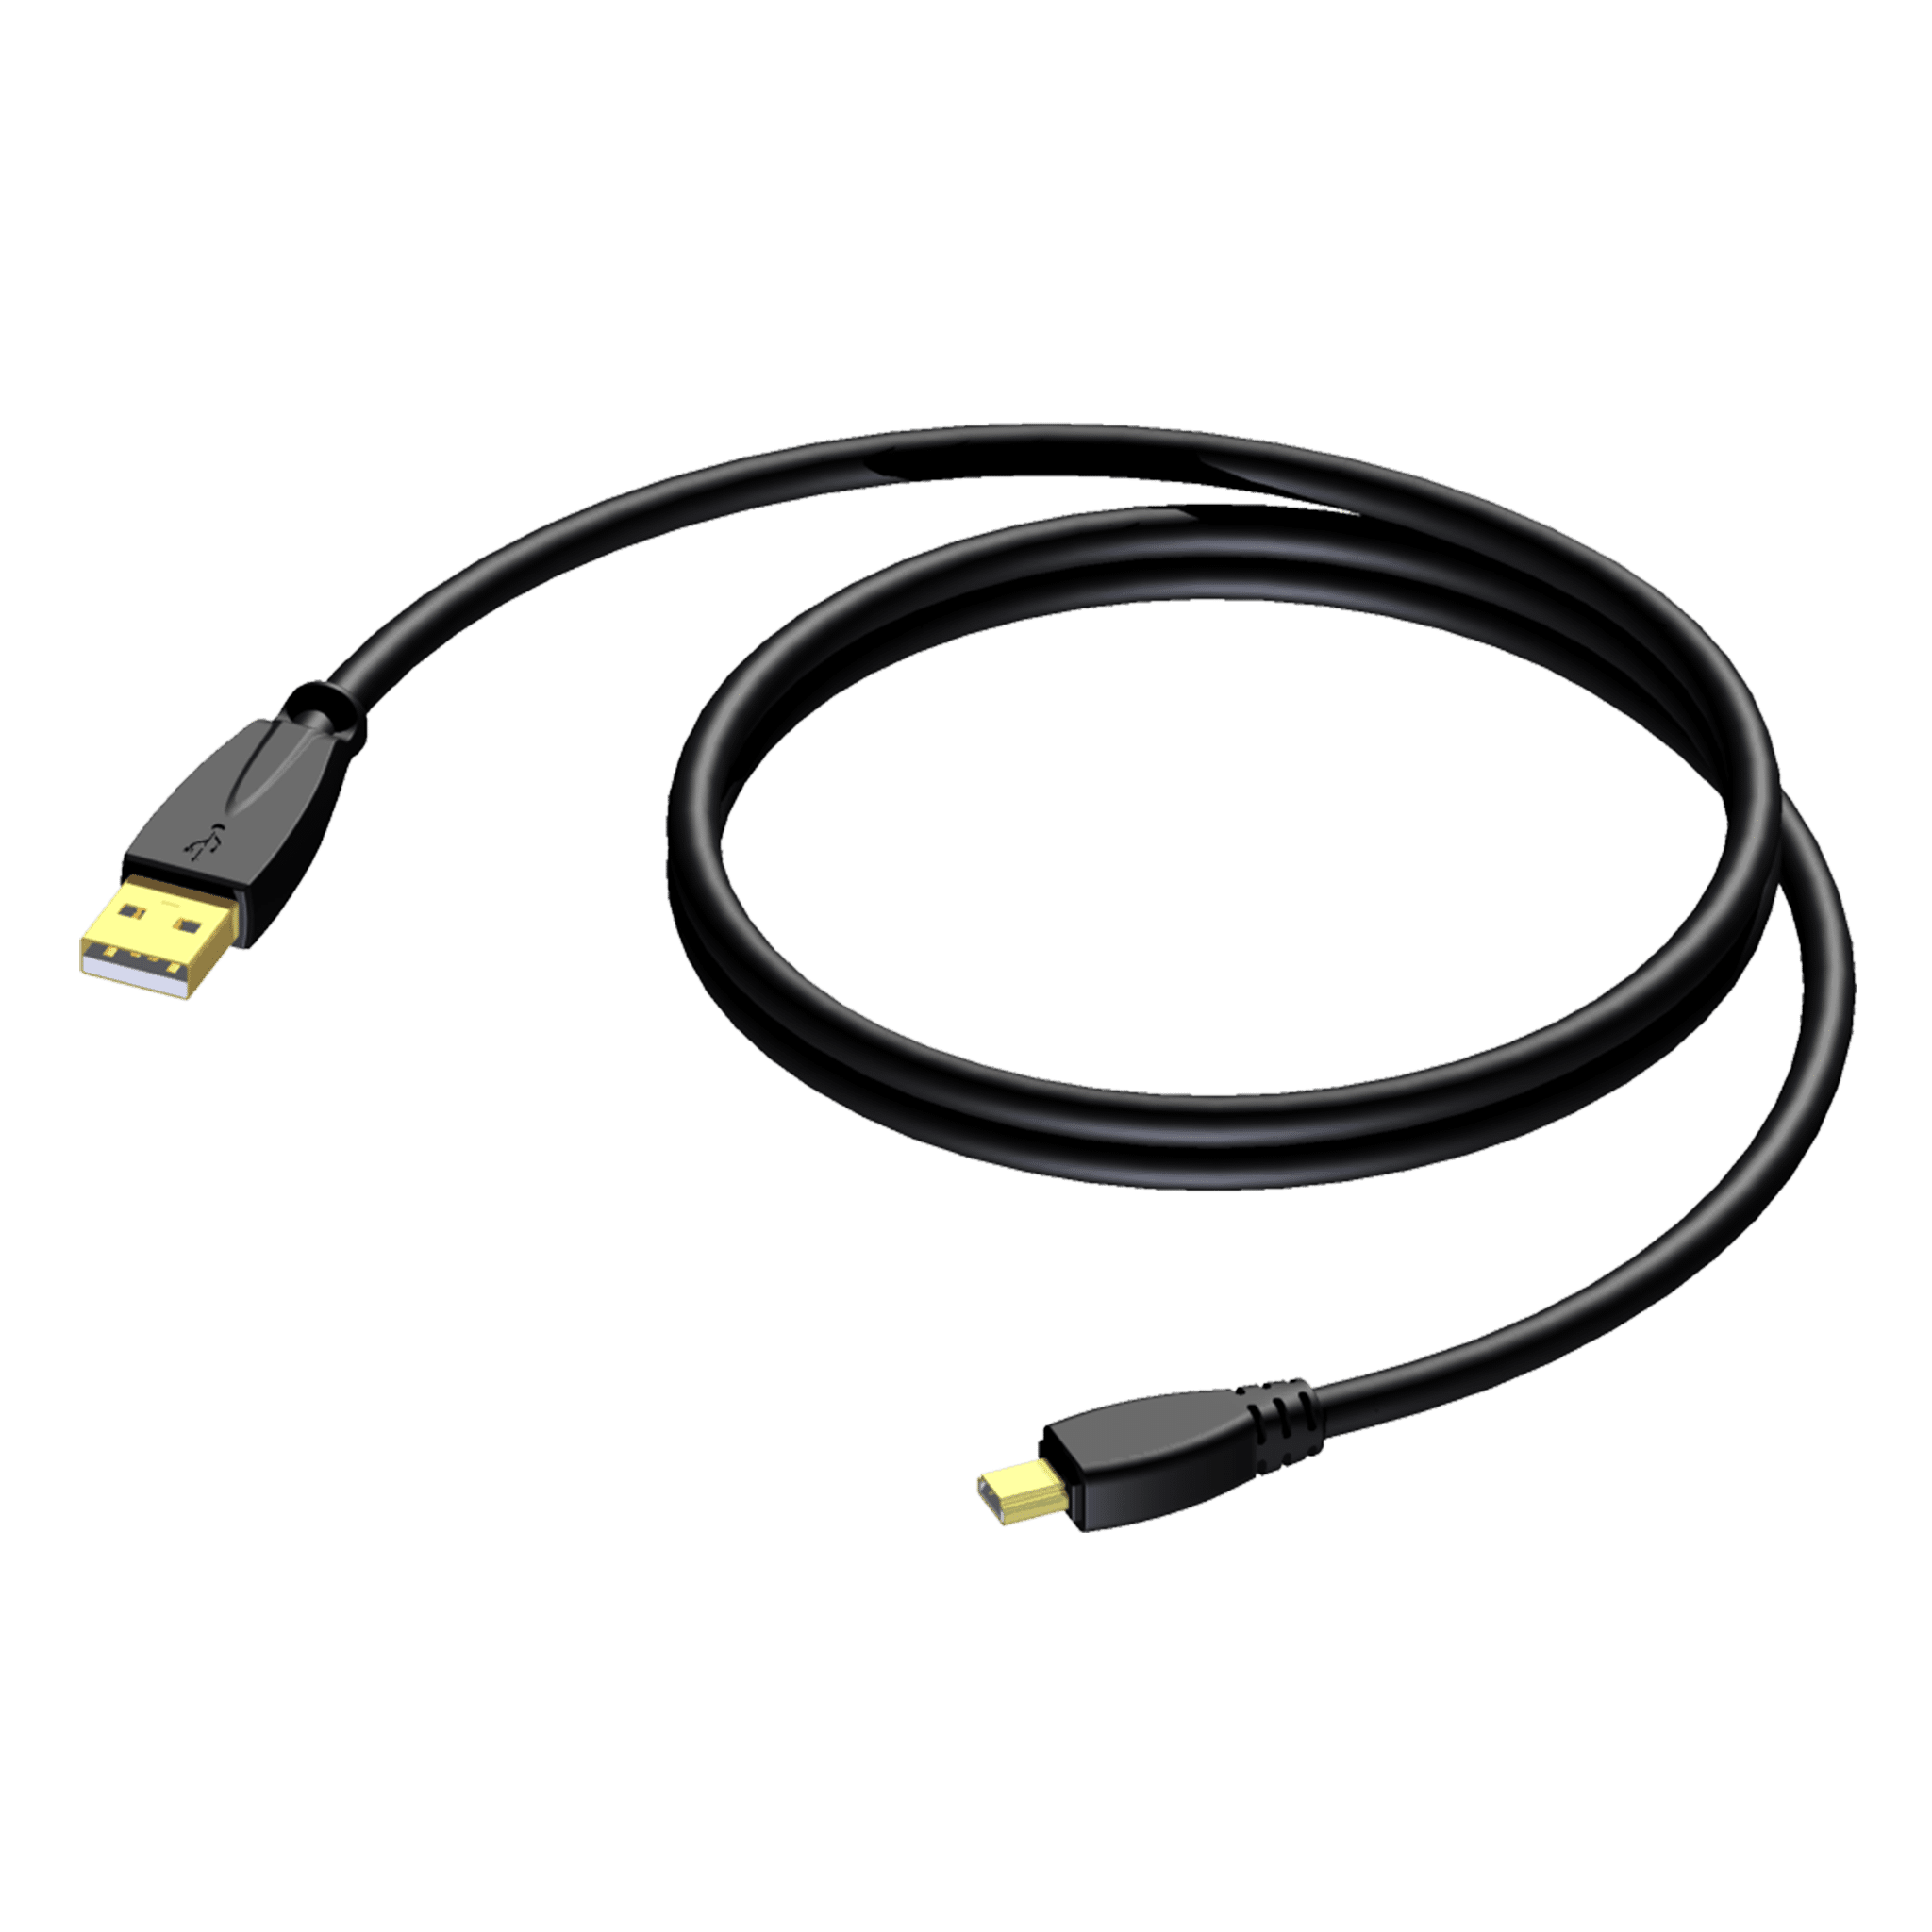 CXU625 - USB A - USB mini B